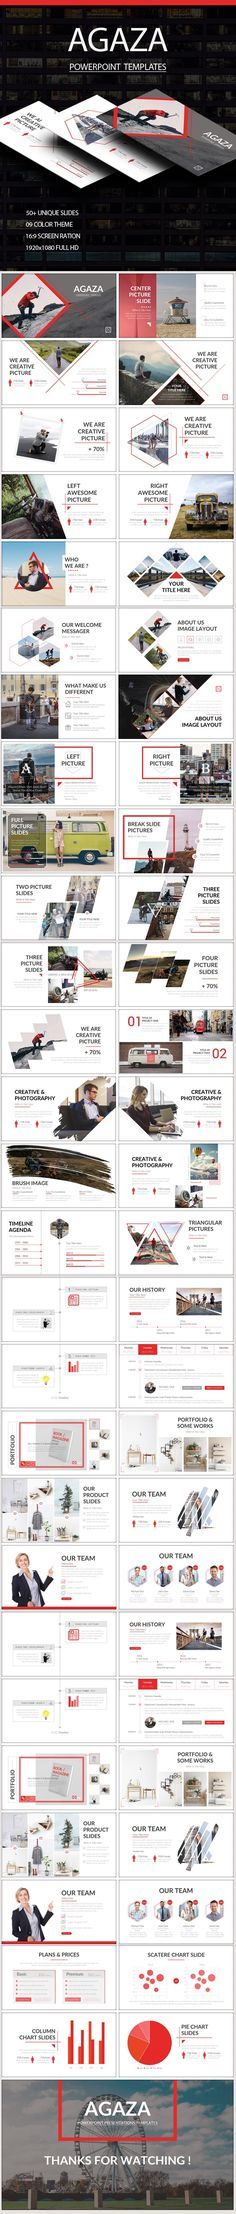 AGAZA PowerPoint Templates. Download here: https://graphicriver.net/item/agaza-powerpoint-templates/16995326?ref=ksioks